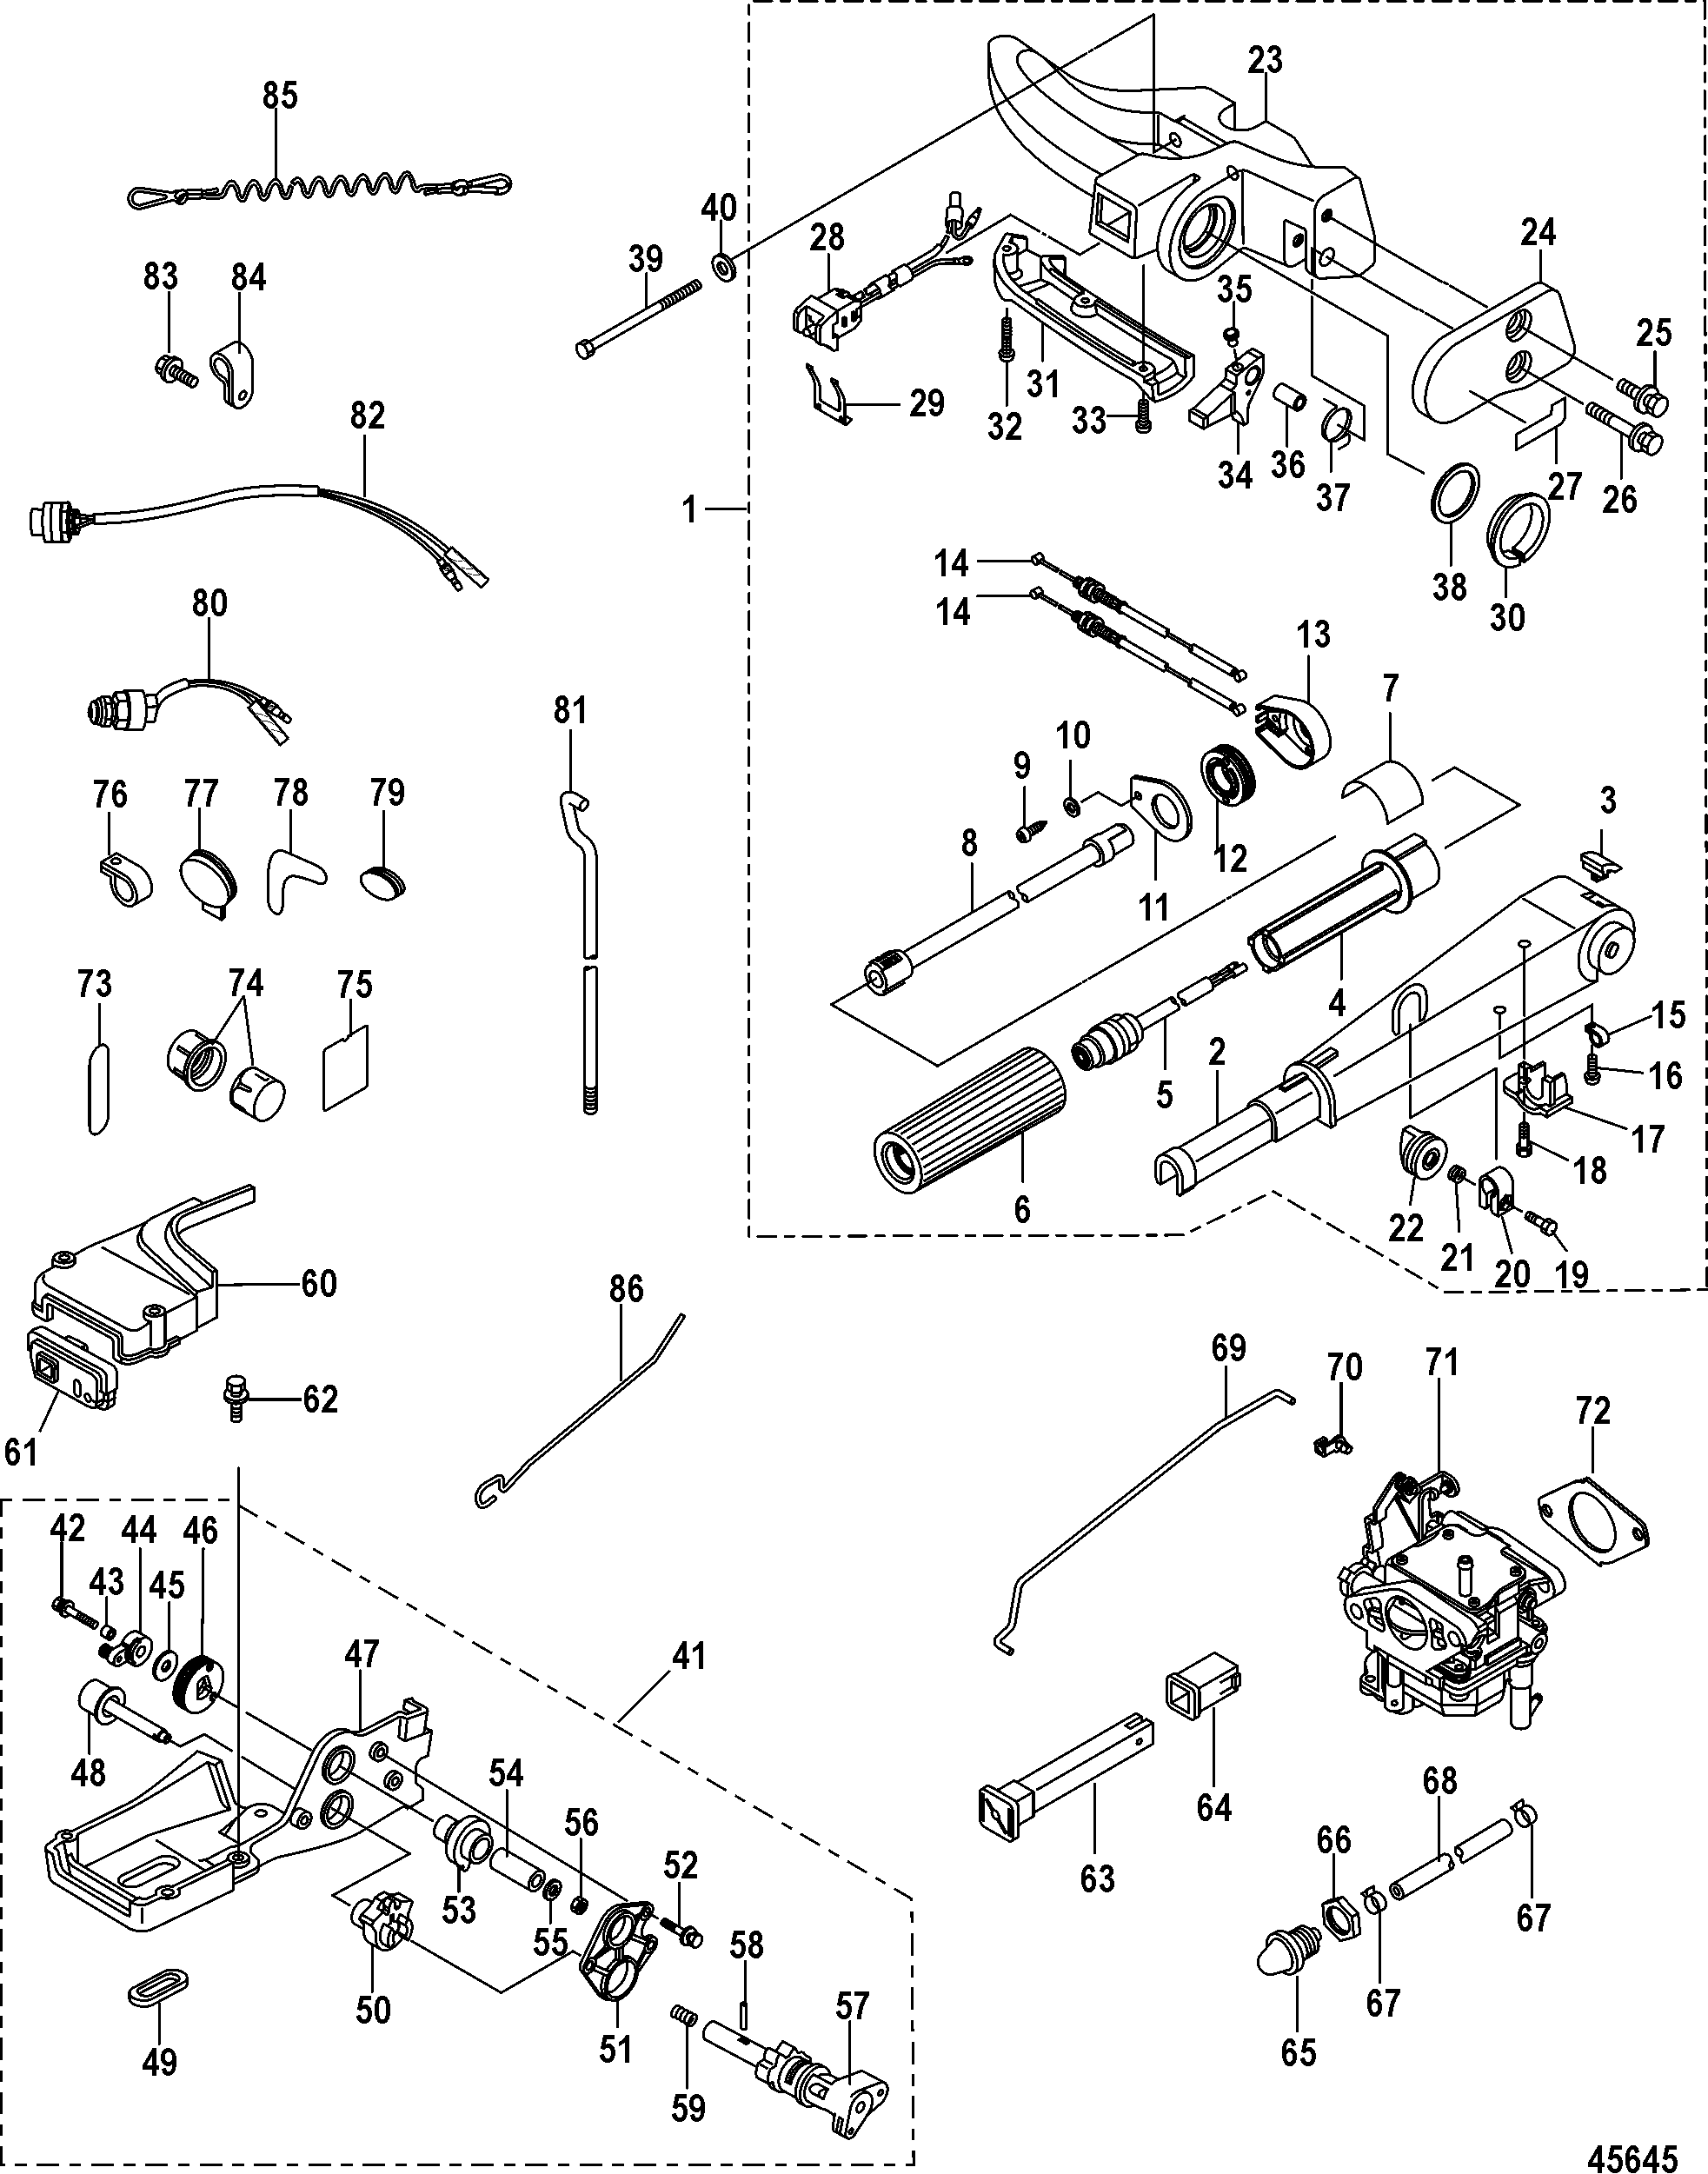 honda 9.9 outboard service manual